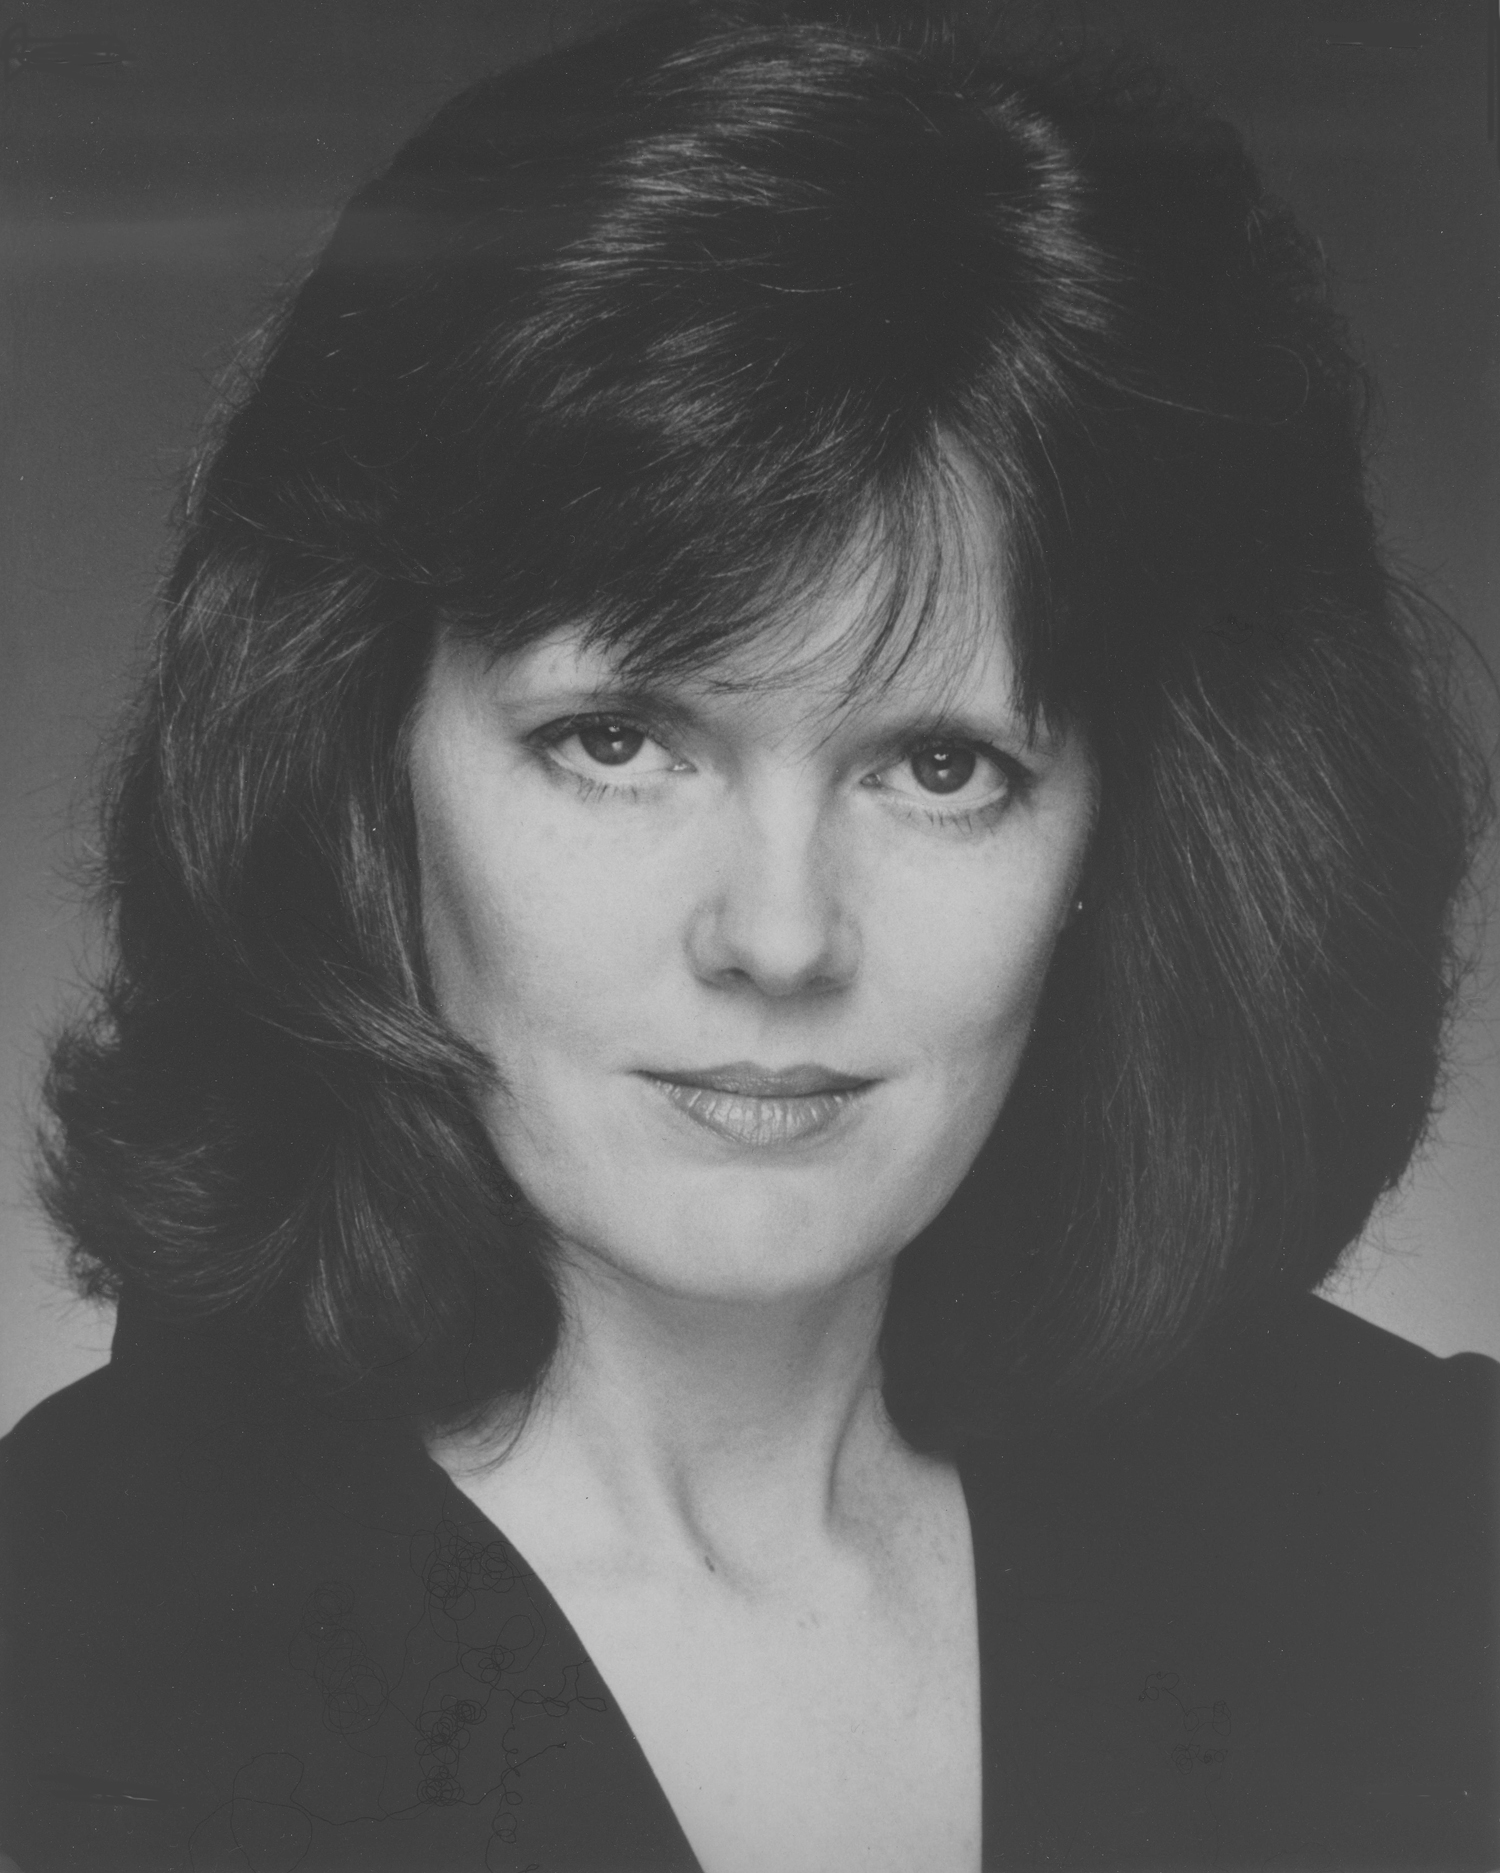 Headshot, about 1986